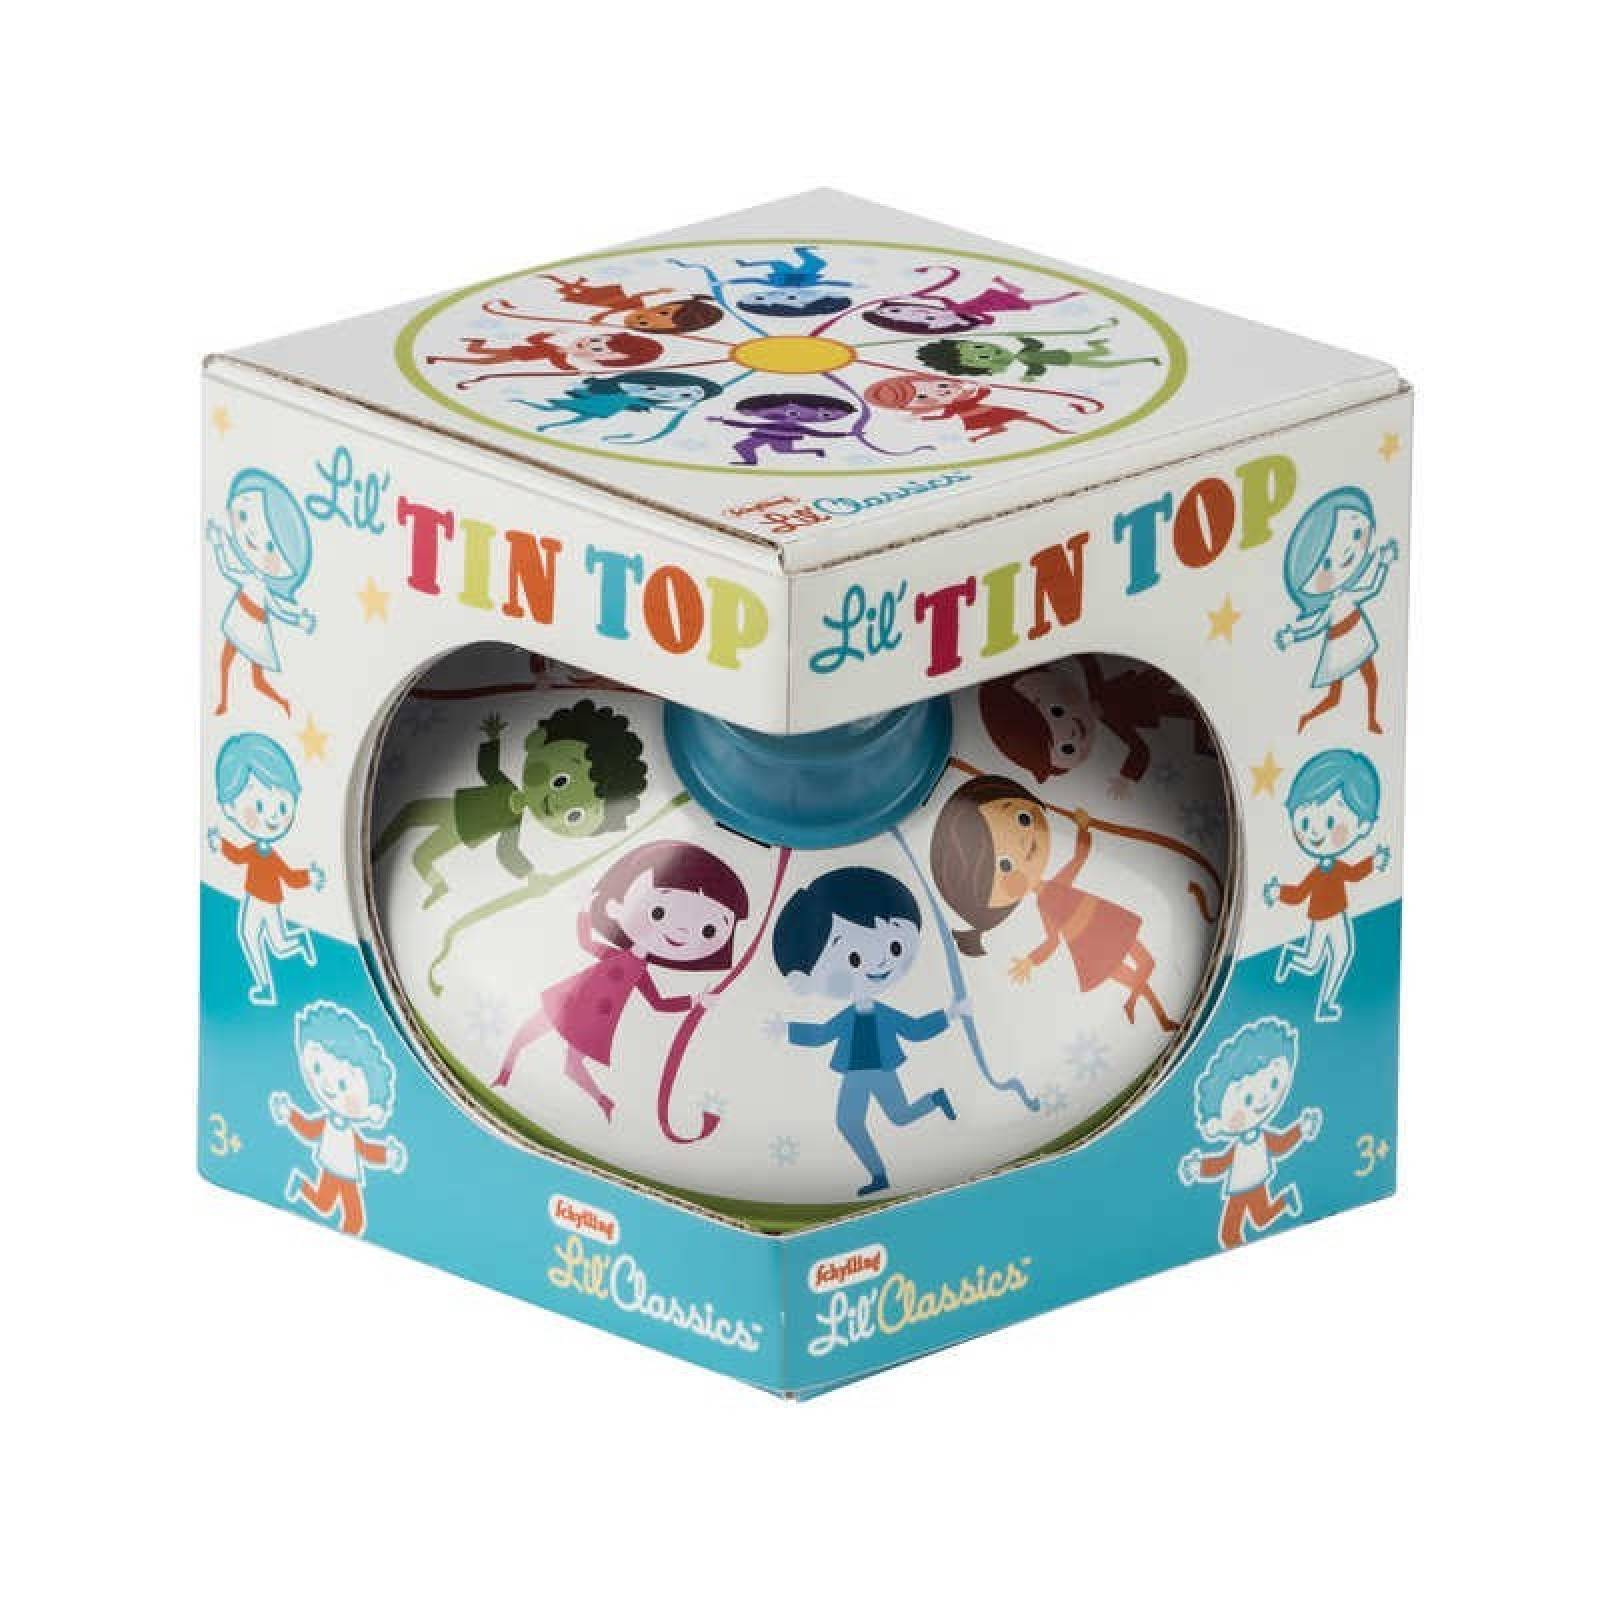 Classic Small Tin Spinning Top With Dancing Children 3+ thumbnails